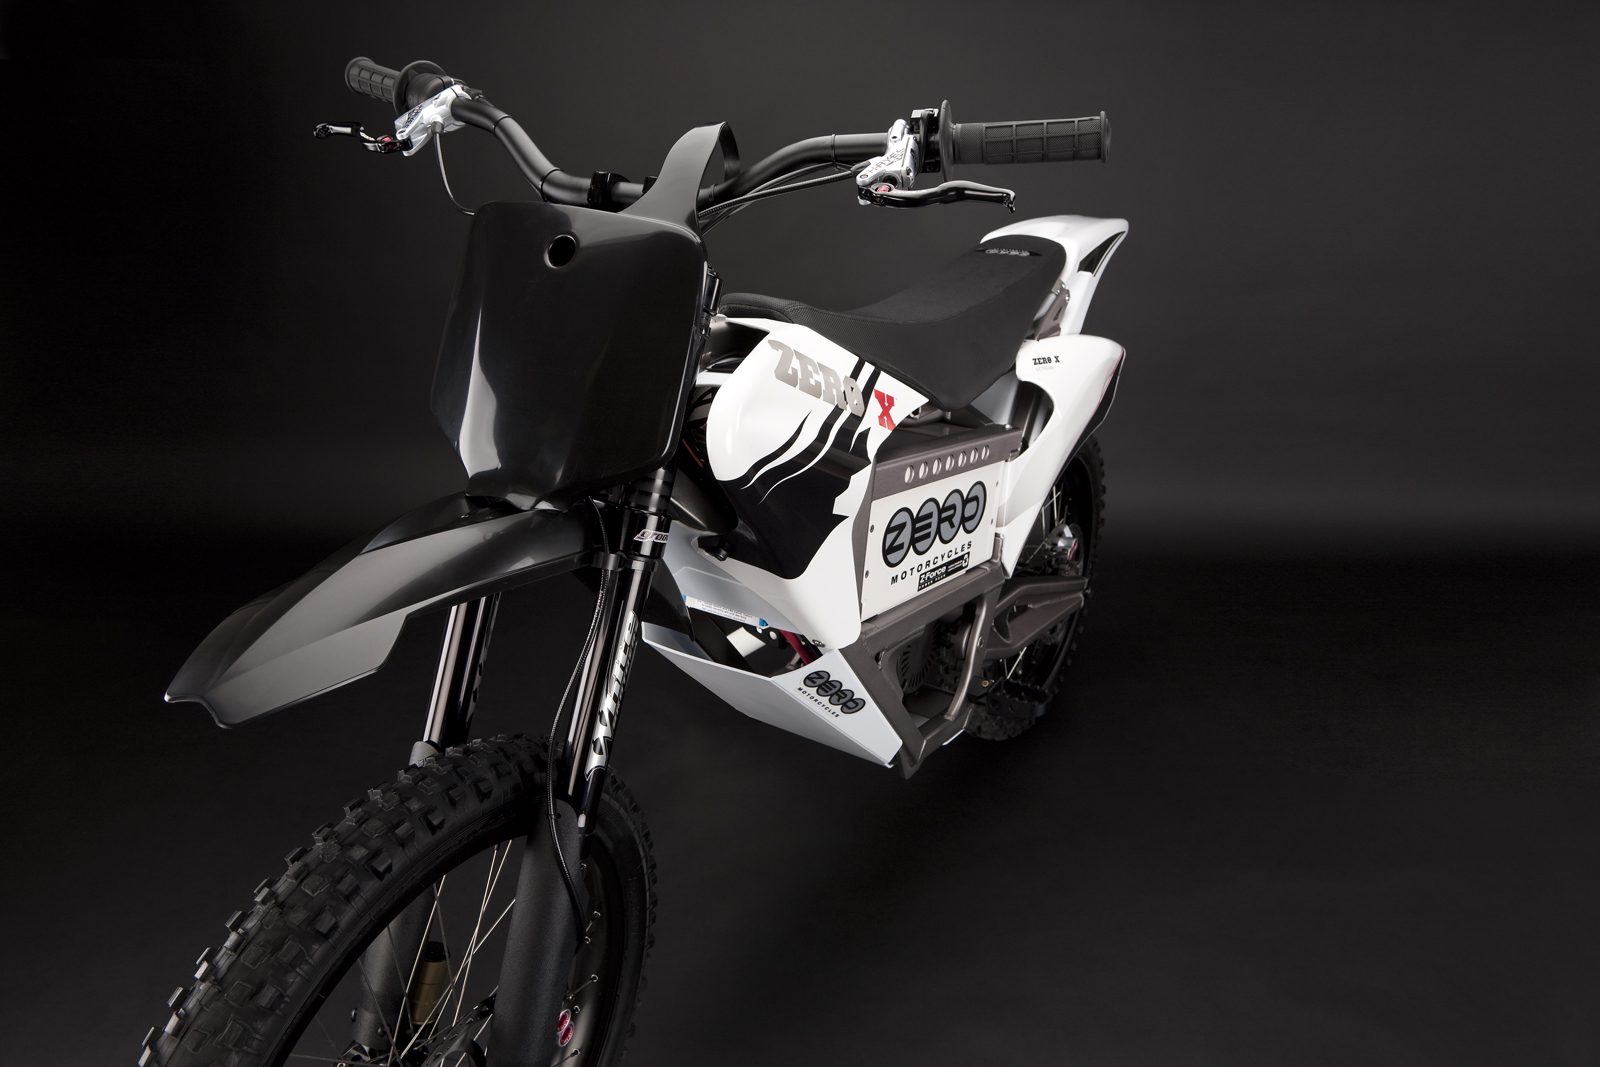 2010 Zero X Electric Motorcycle: Rear Shock